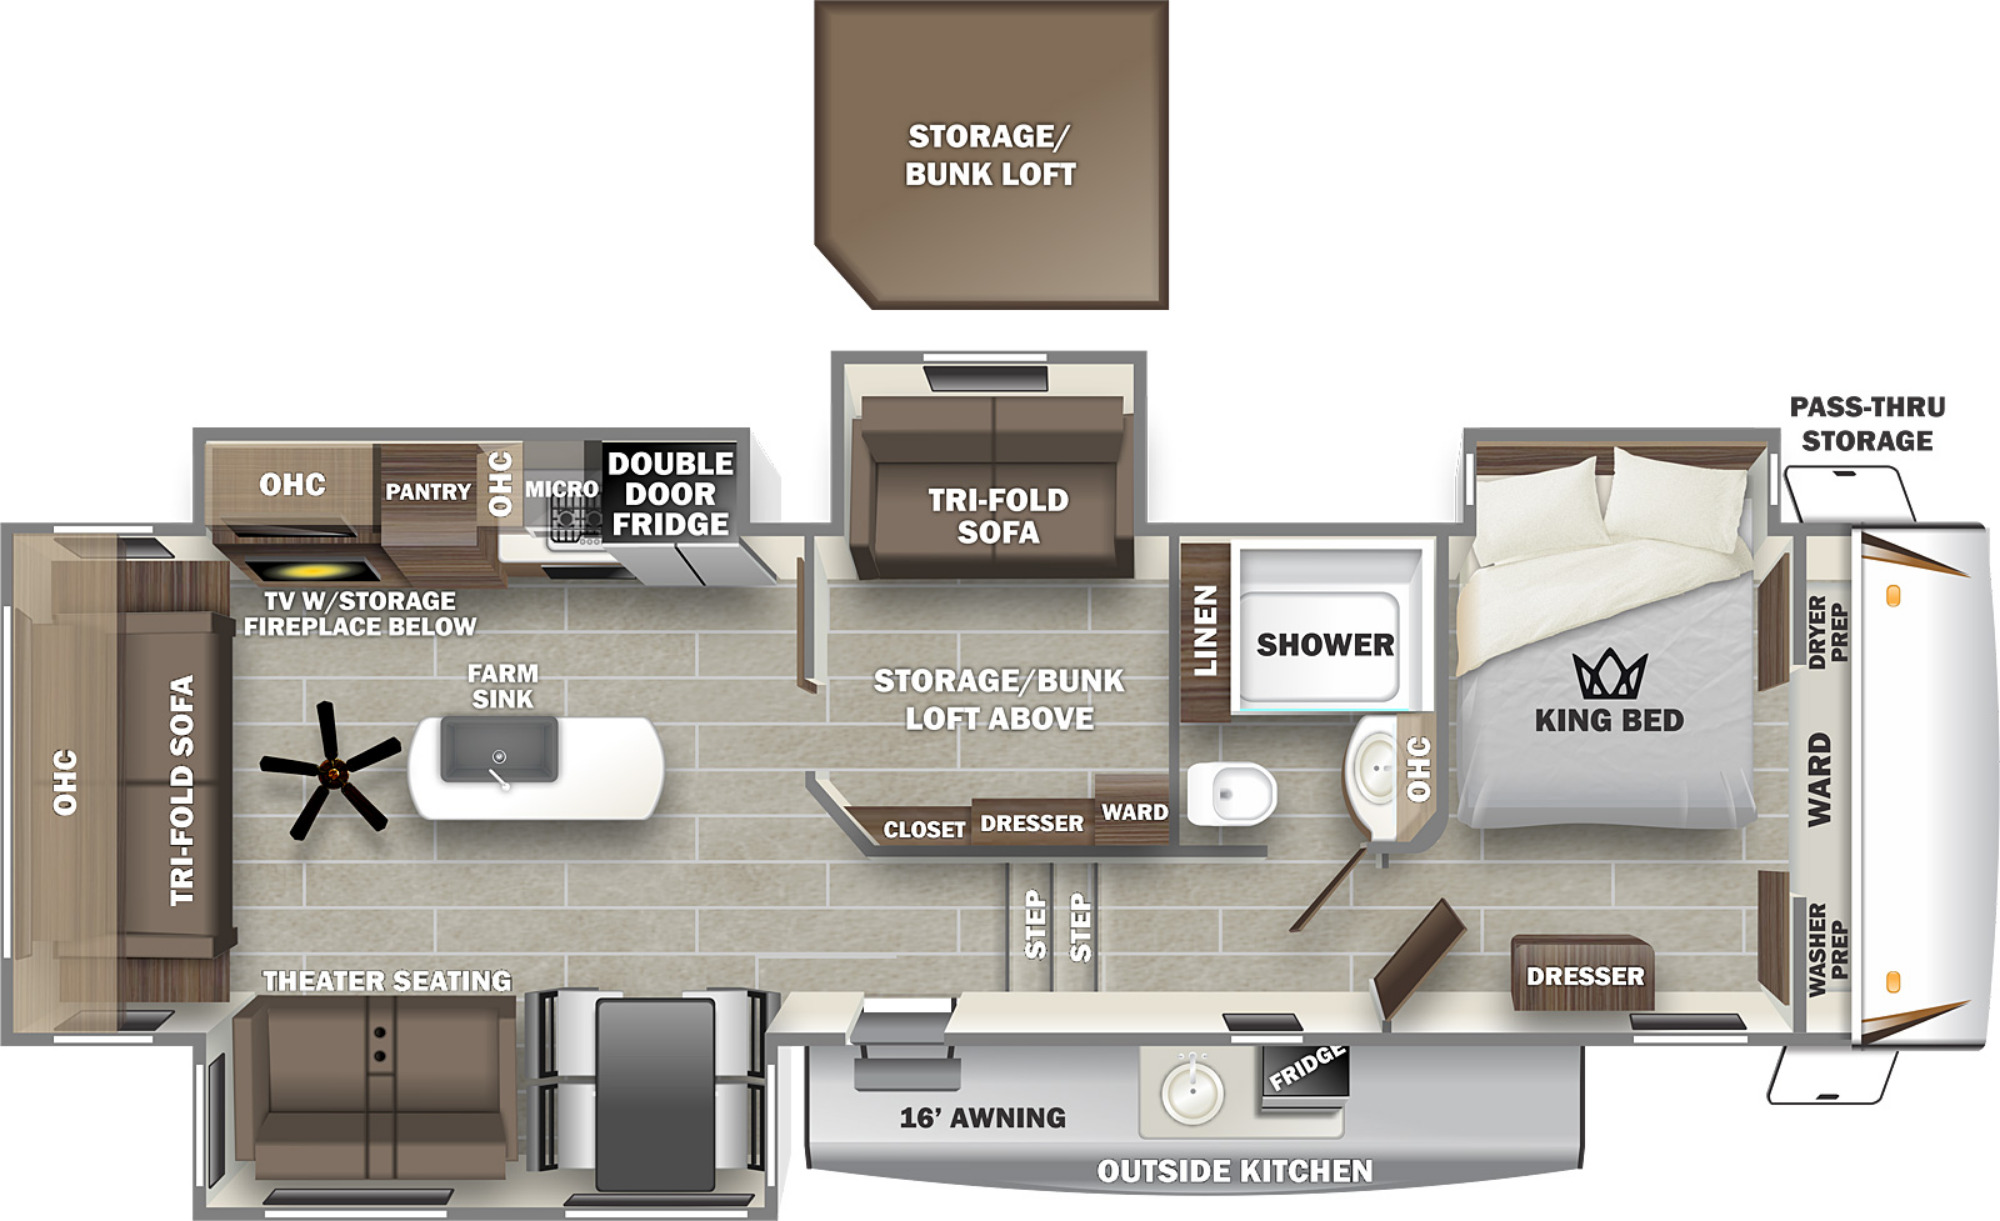 View Floor Plan for 2022 FOREST RIVER SABRE 36BHQ